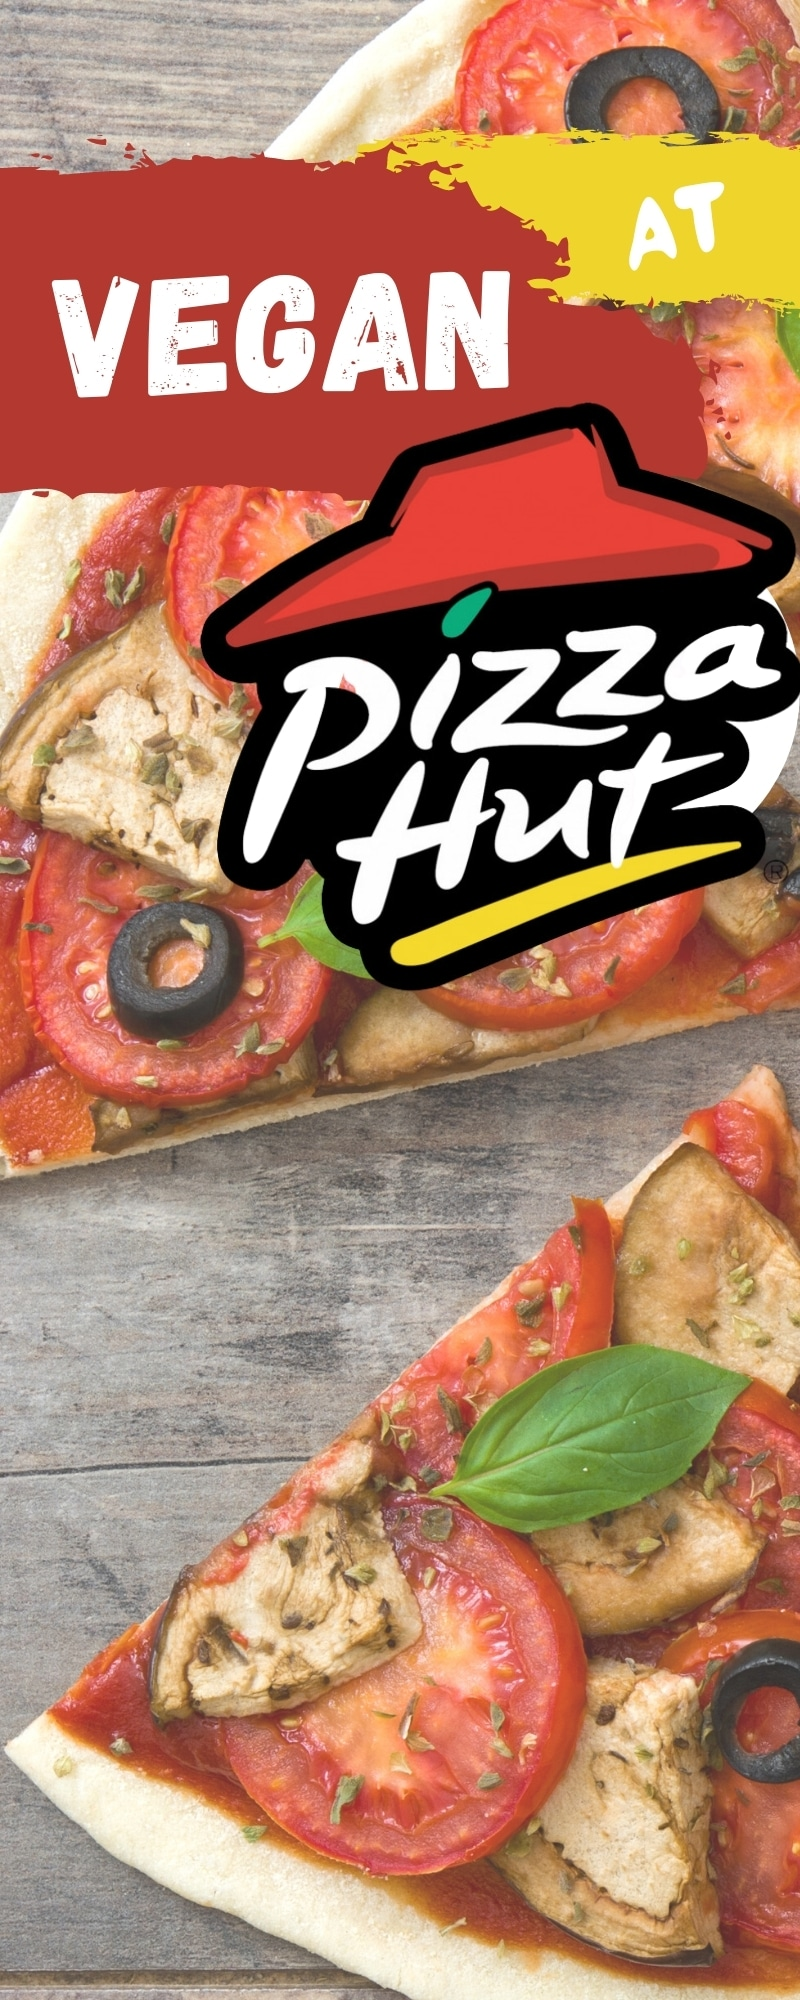 Guide to Ordering Vegan at Pizza Hut